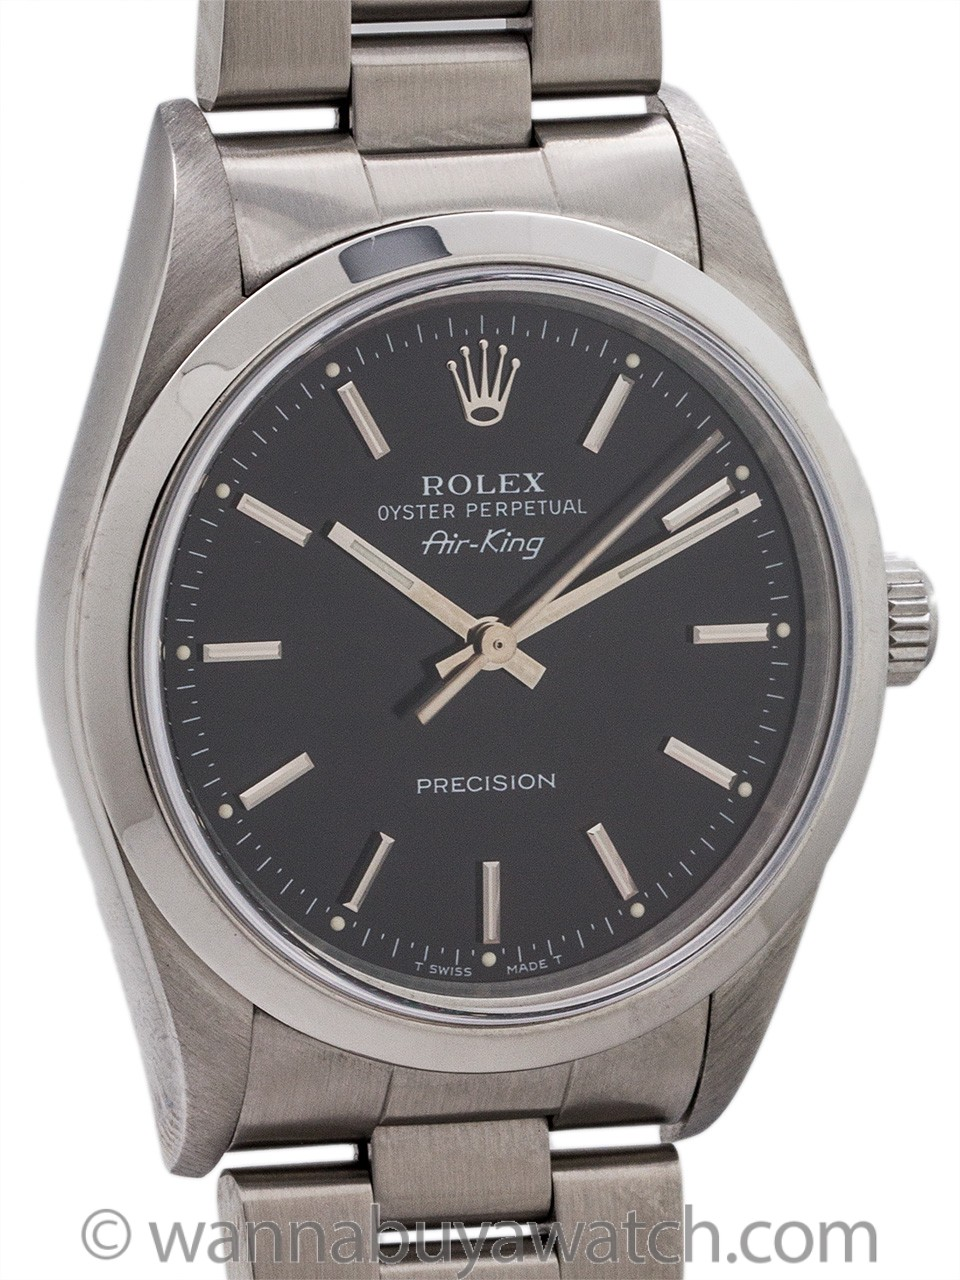 Rolex SS Oyster Perpetual Airking ref 14000 circa 1998